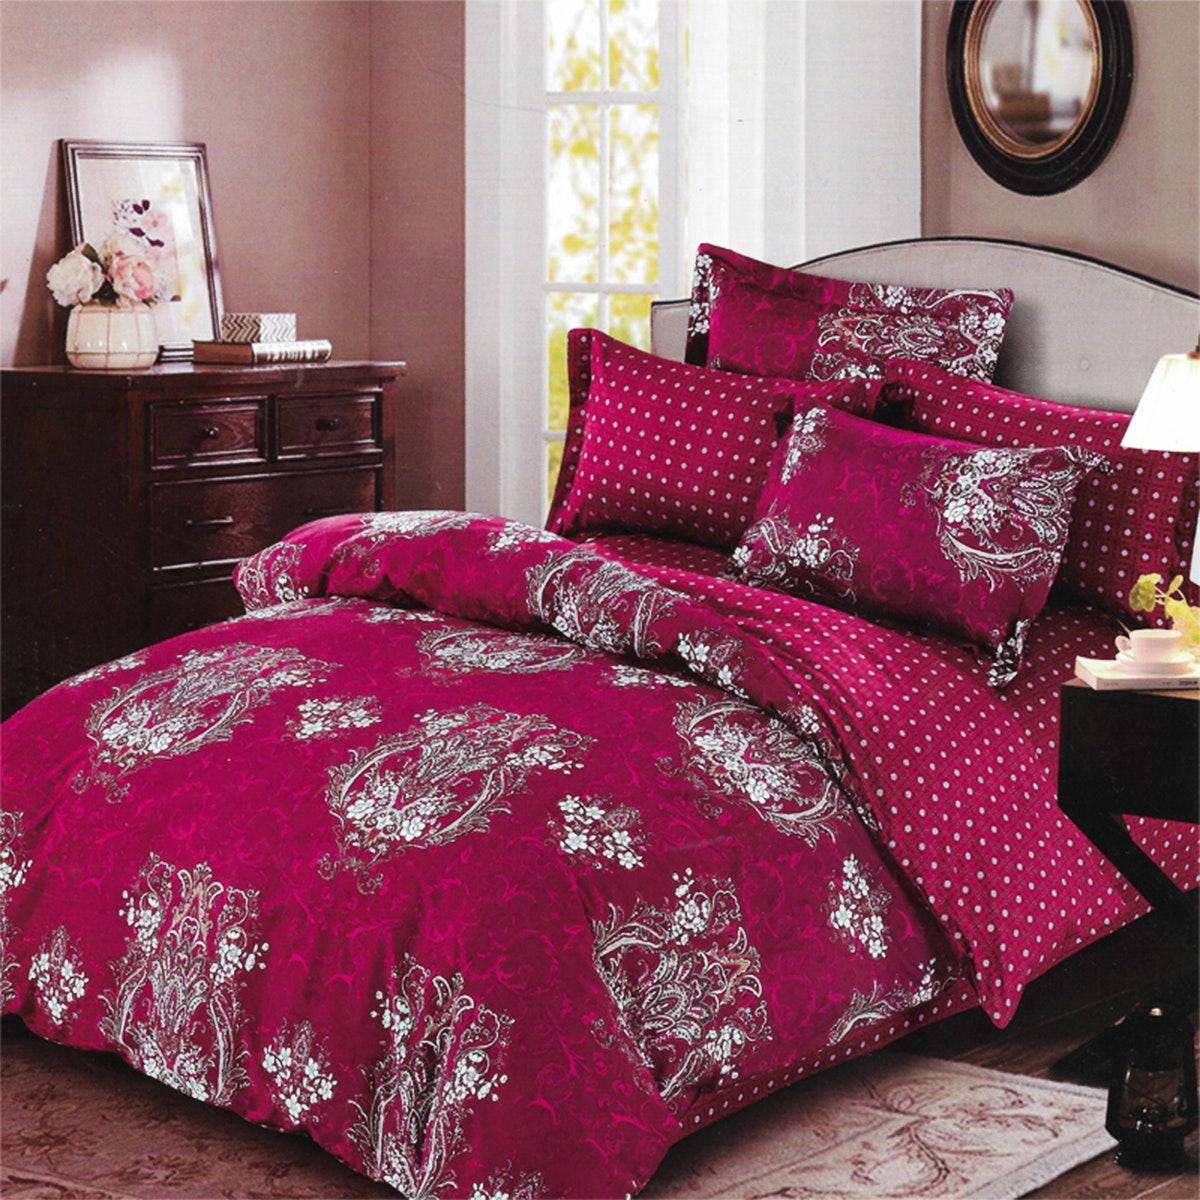 Sleep Buddy Set Sprei dan Bed Cover Red Carve Cotton Sateen 180x200x30